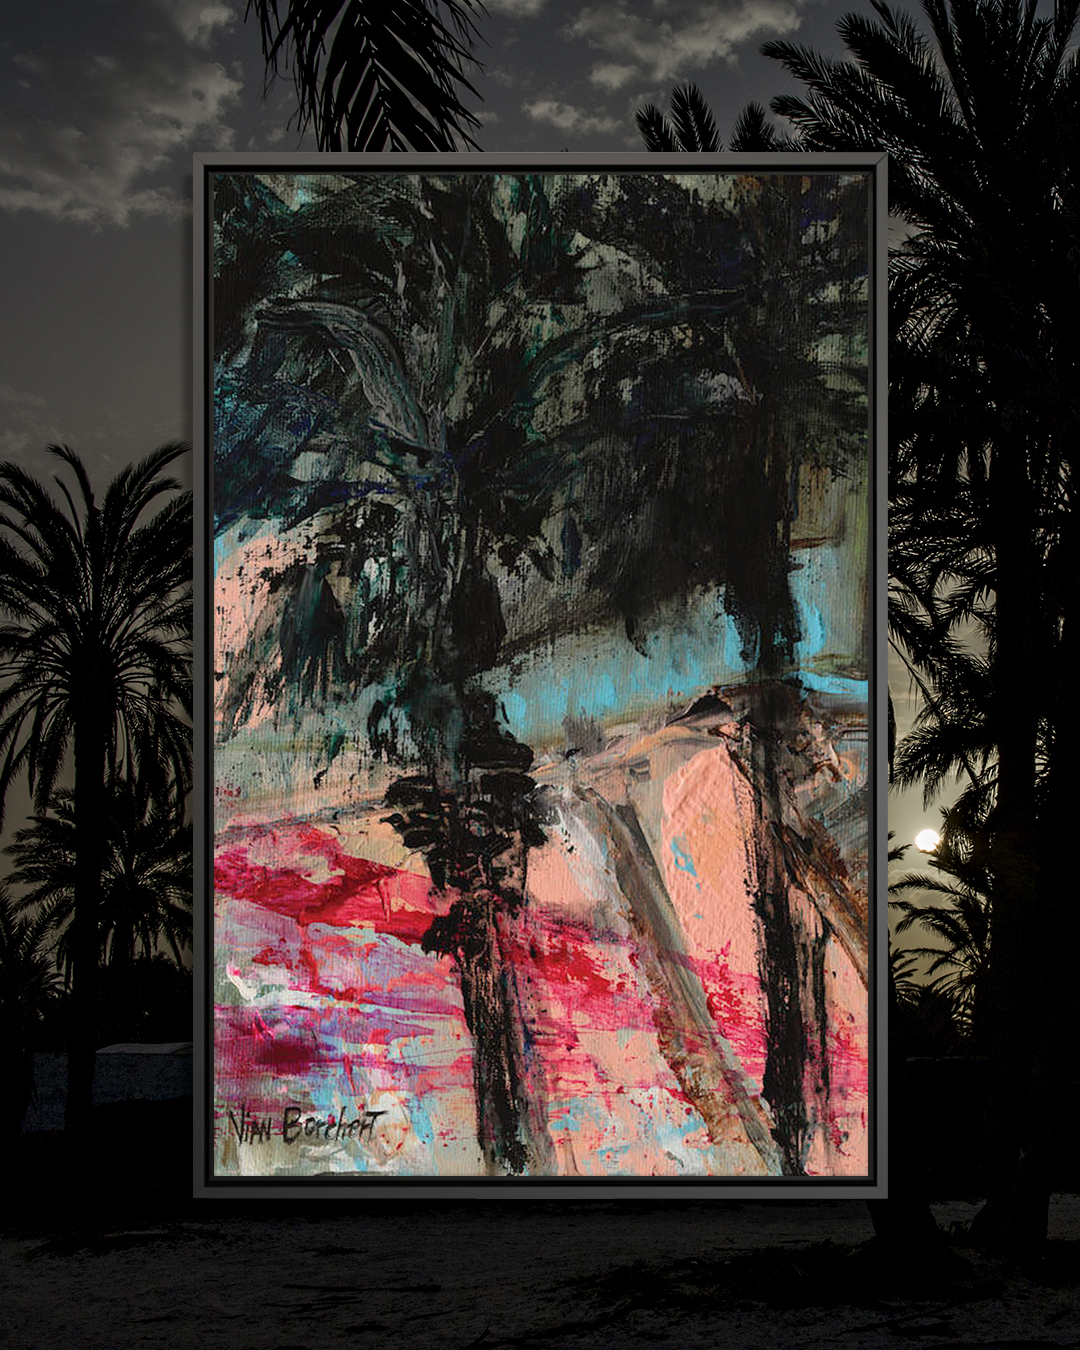 """""""Twilight Palm Trees"""" by Vian Borchert shows black palm trees against a pink and red background."""